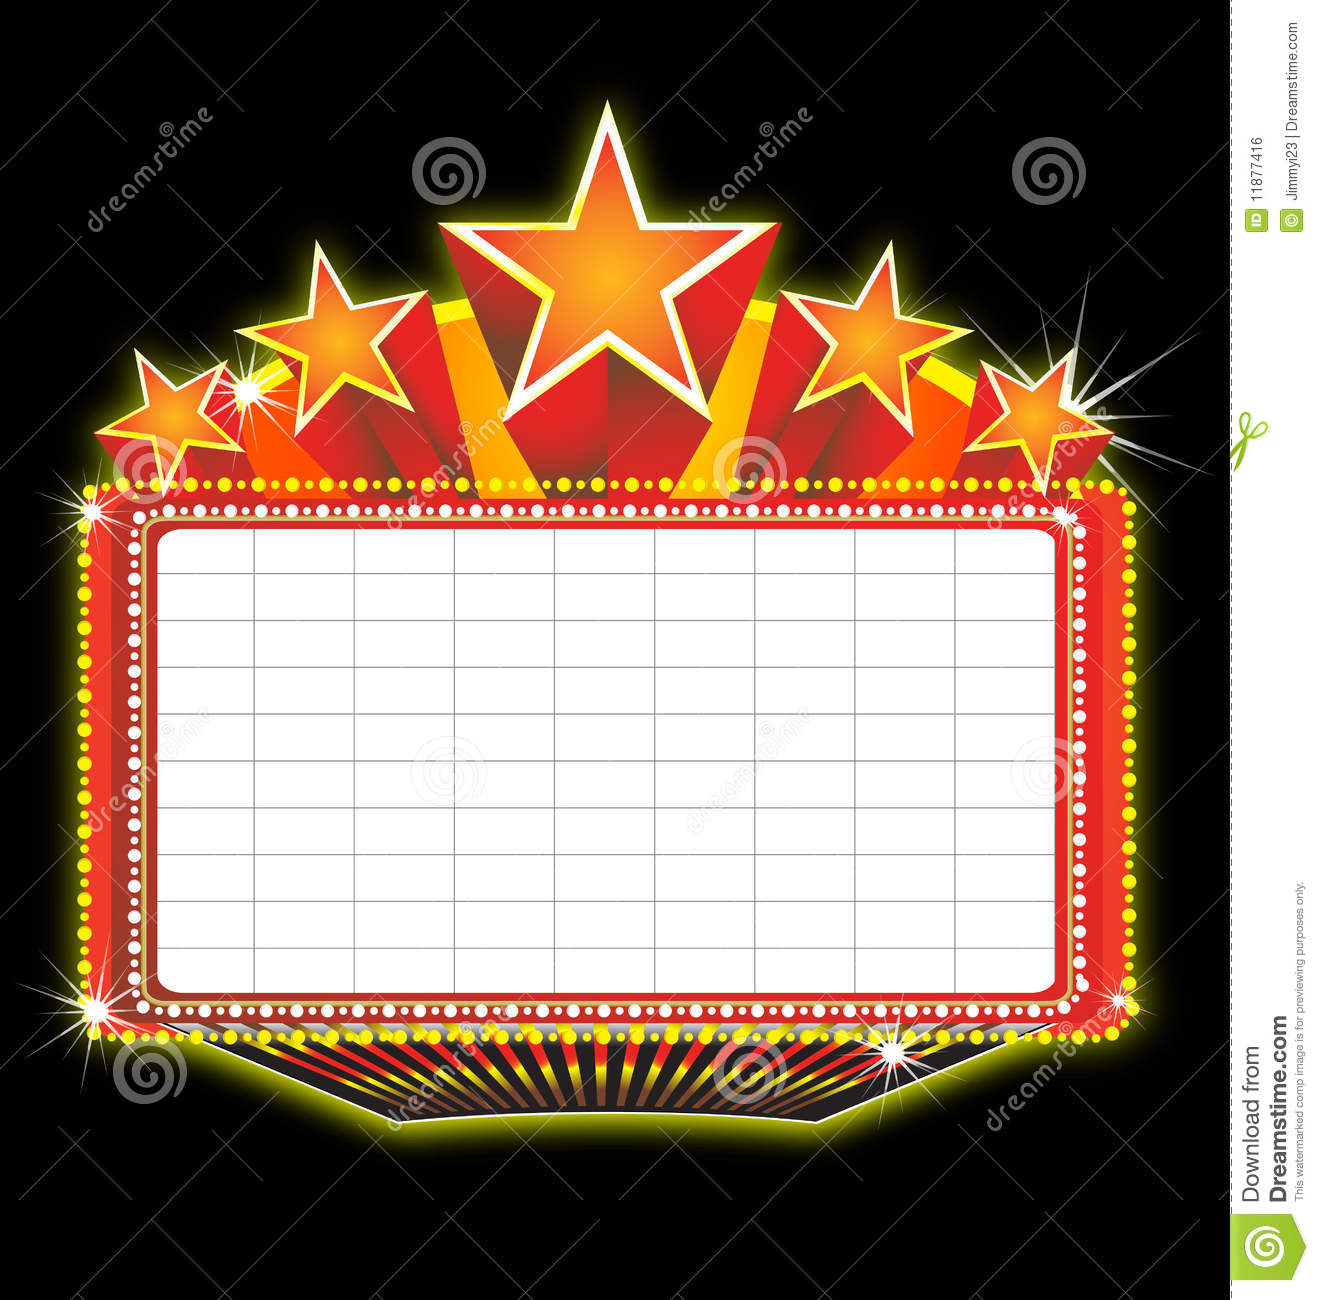 451 Marquee free clipart.